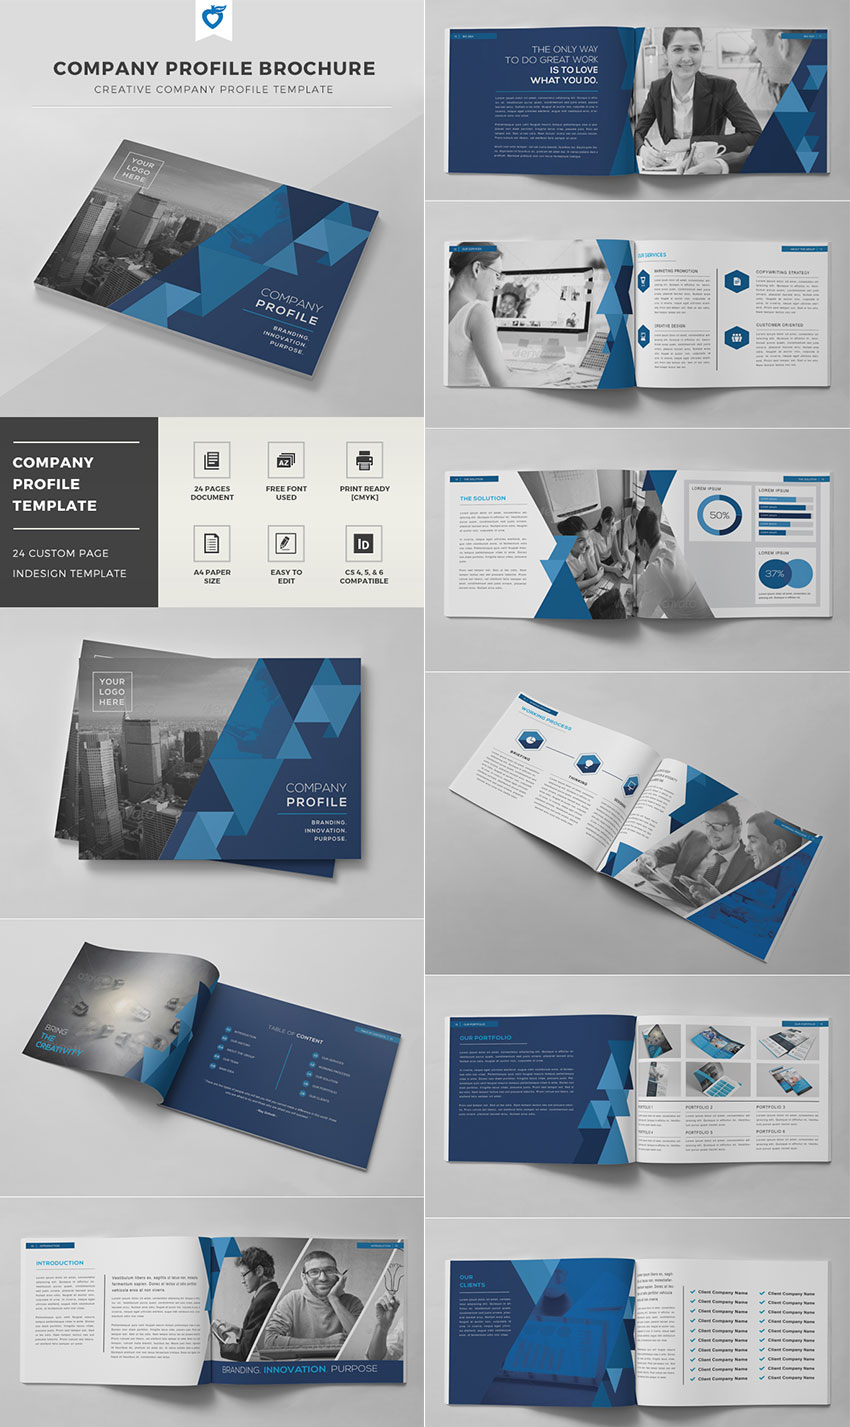 20 Best InDesign Brochure Templates For Creative Business Marketing – Company Brochure Templates